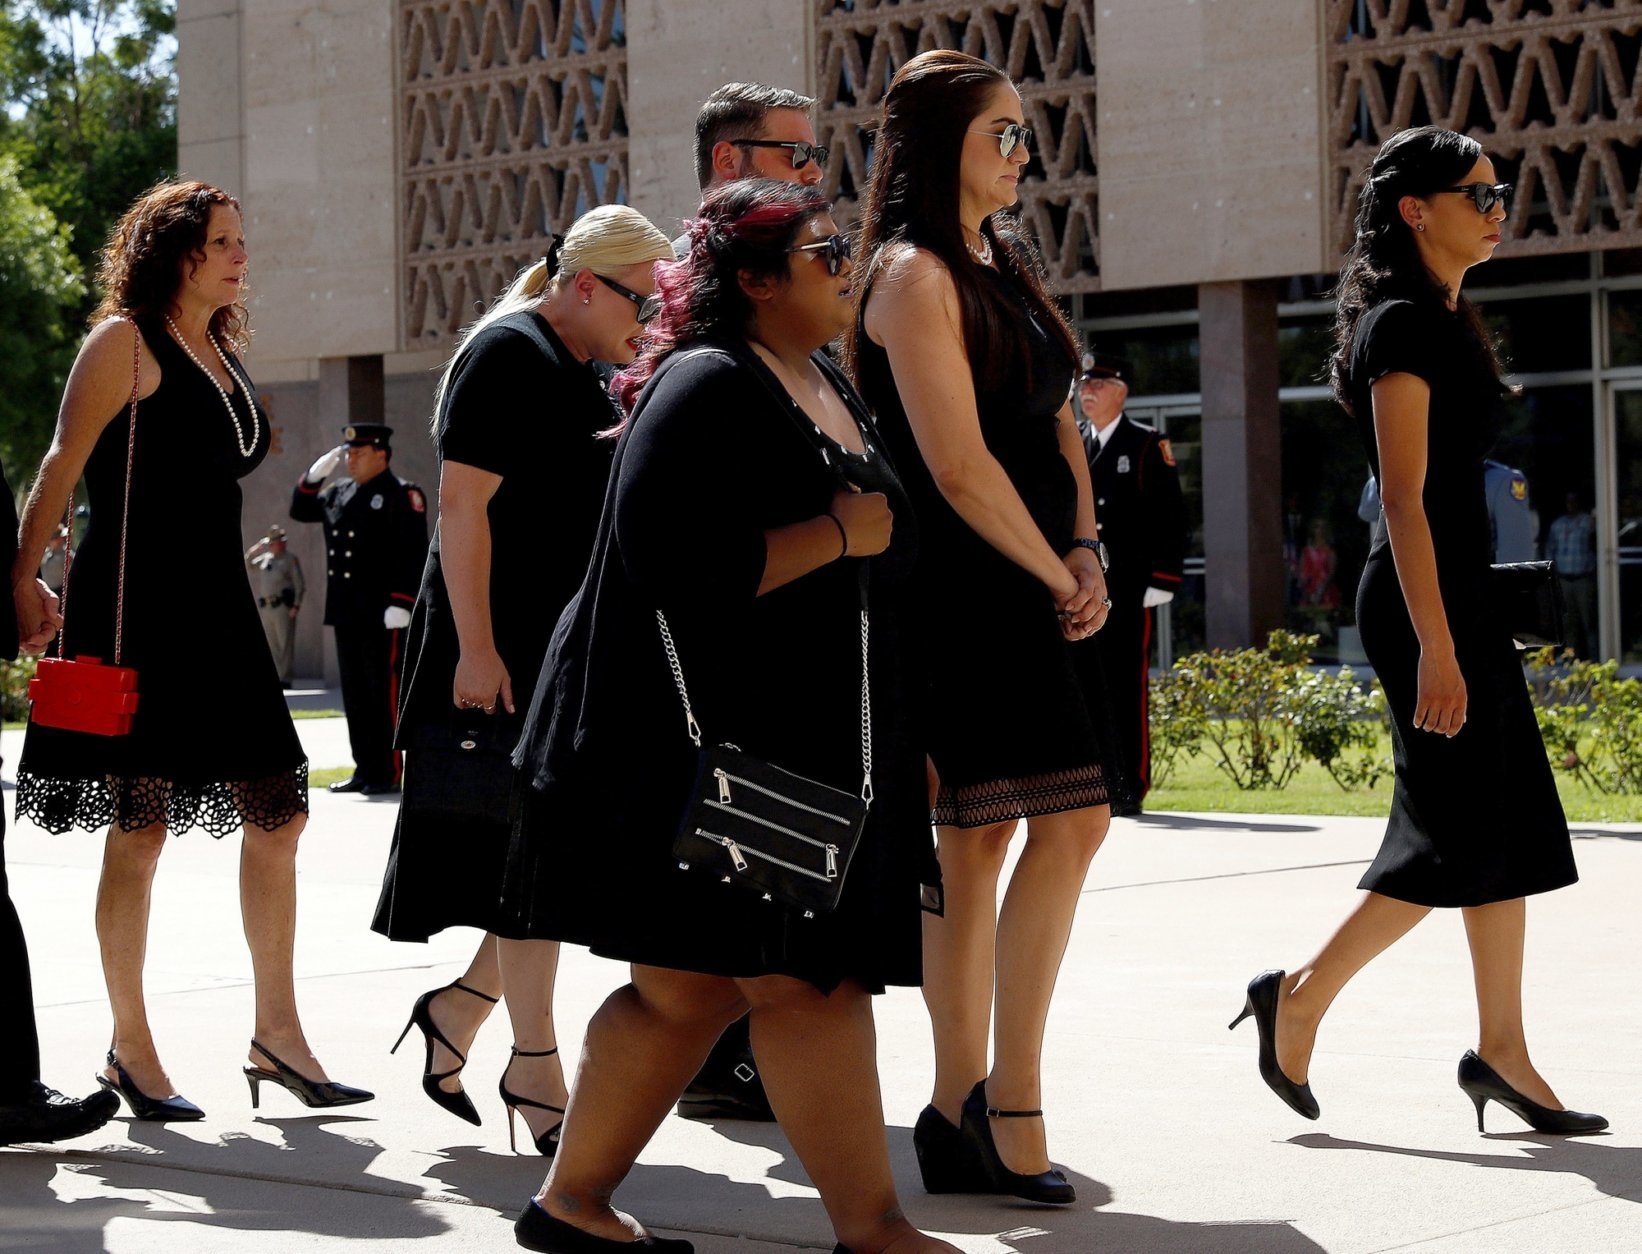 Children of Sen. John McCain, R-Ariz., from back left, Sidney McCain, Meghan McCain and her husband Ben Domenech, Bridgett McCain, and daughter-in-laws Holly McCain and Renee Swift, follow behind the casket into the Capitol rotunda for a memorial service, Wednesday, Aug. 29, 2018, at the Capitol in Phoenix.(AP Photo/Matt York)